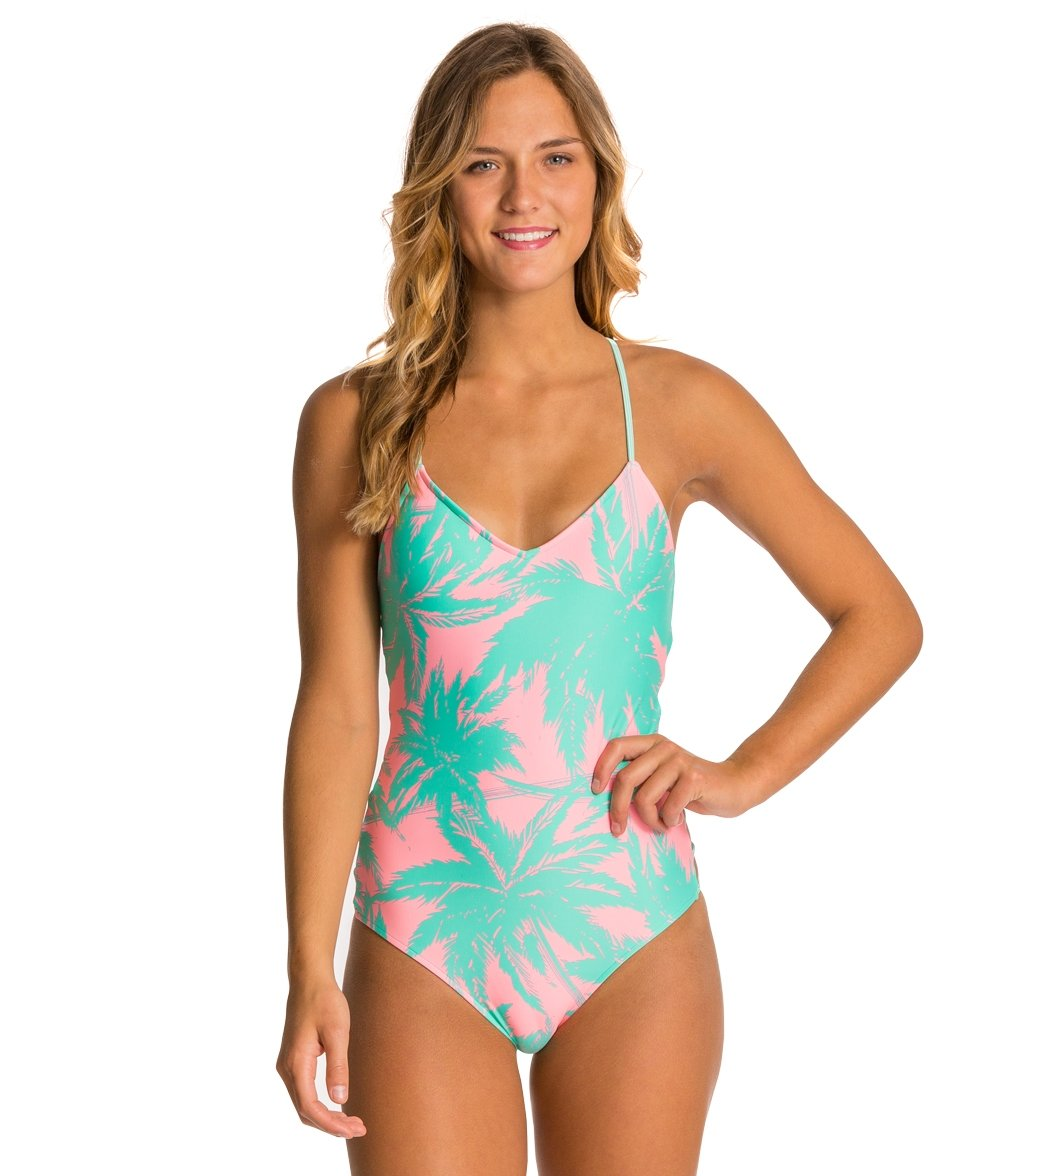 Body Glove Moorea Nina One Piece Swimsuit at SwimOutlet ...